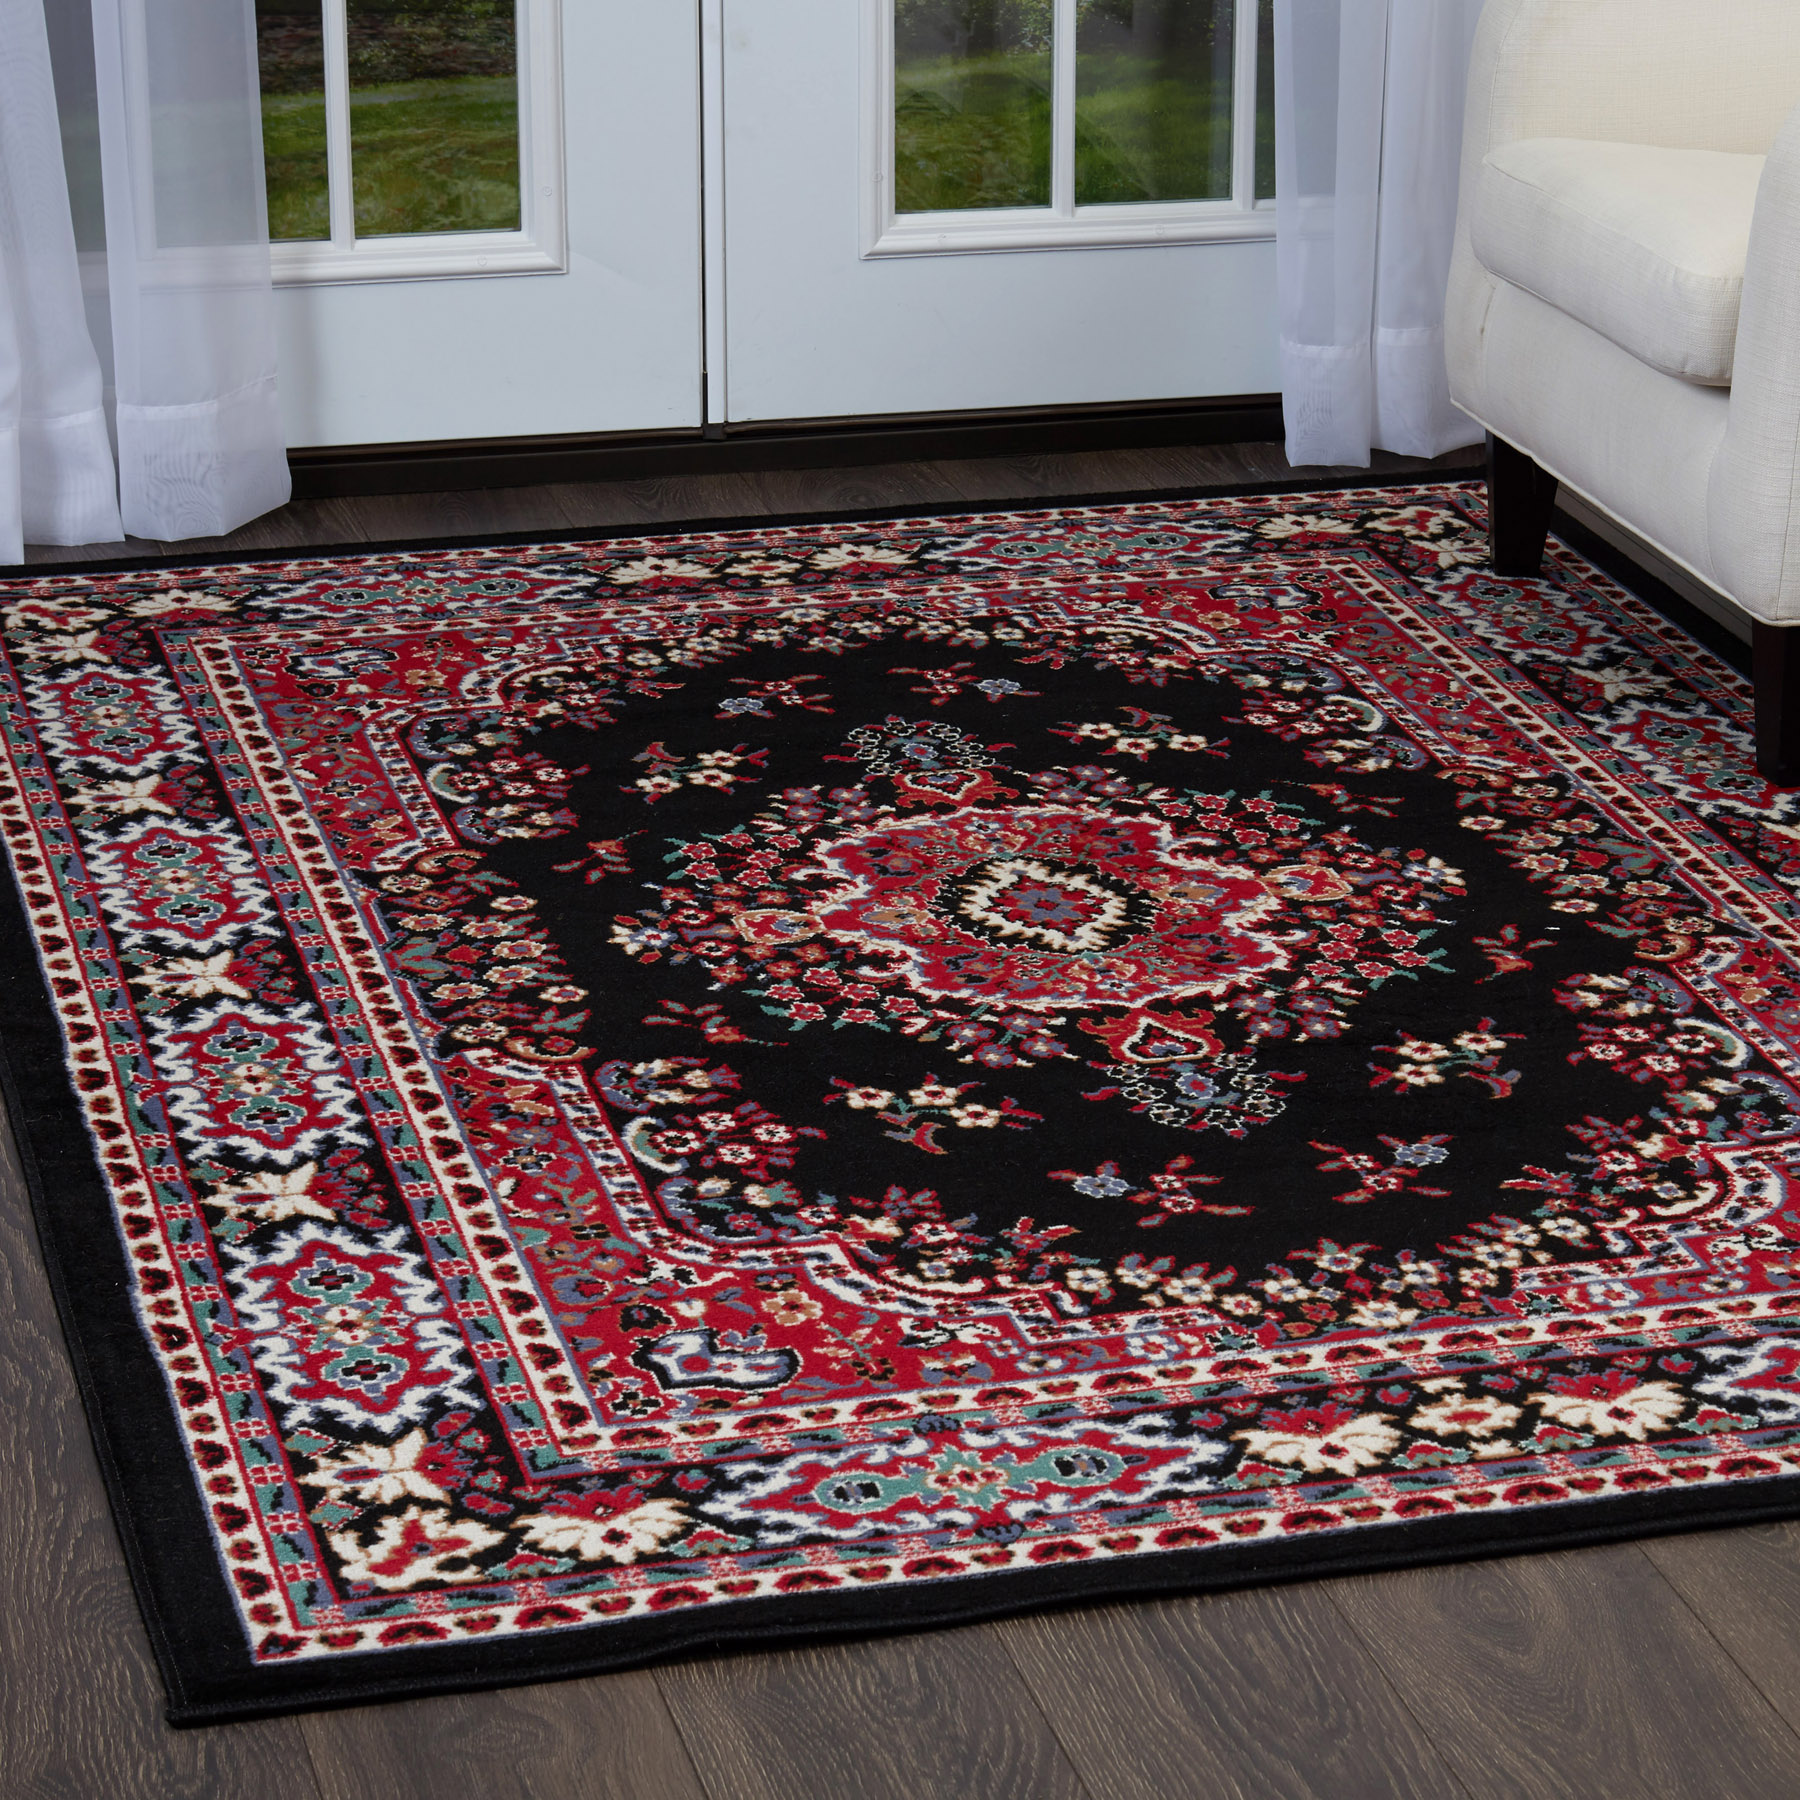 Rug carpet cleaning tips